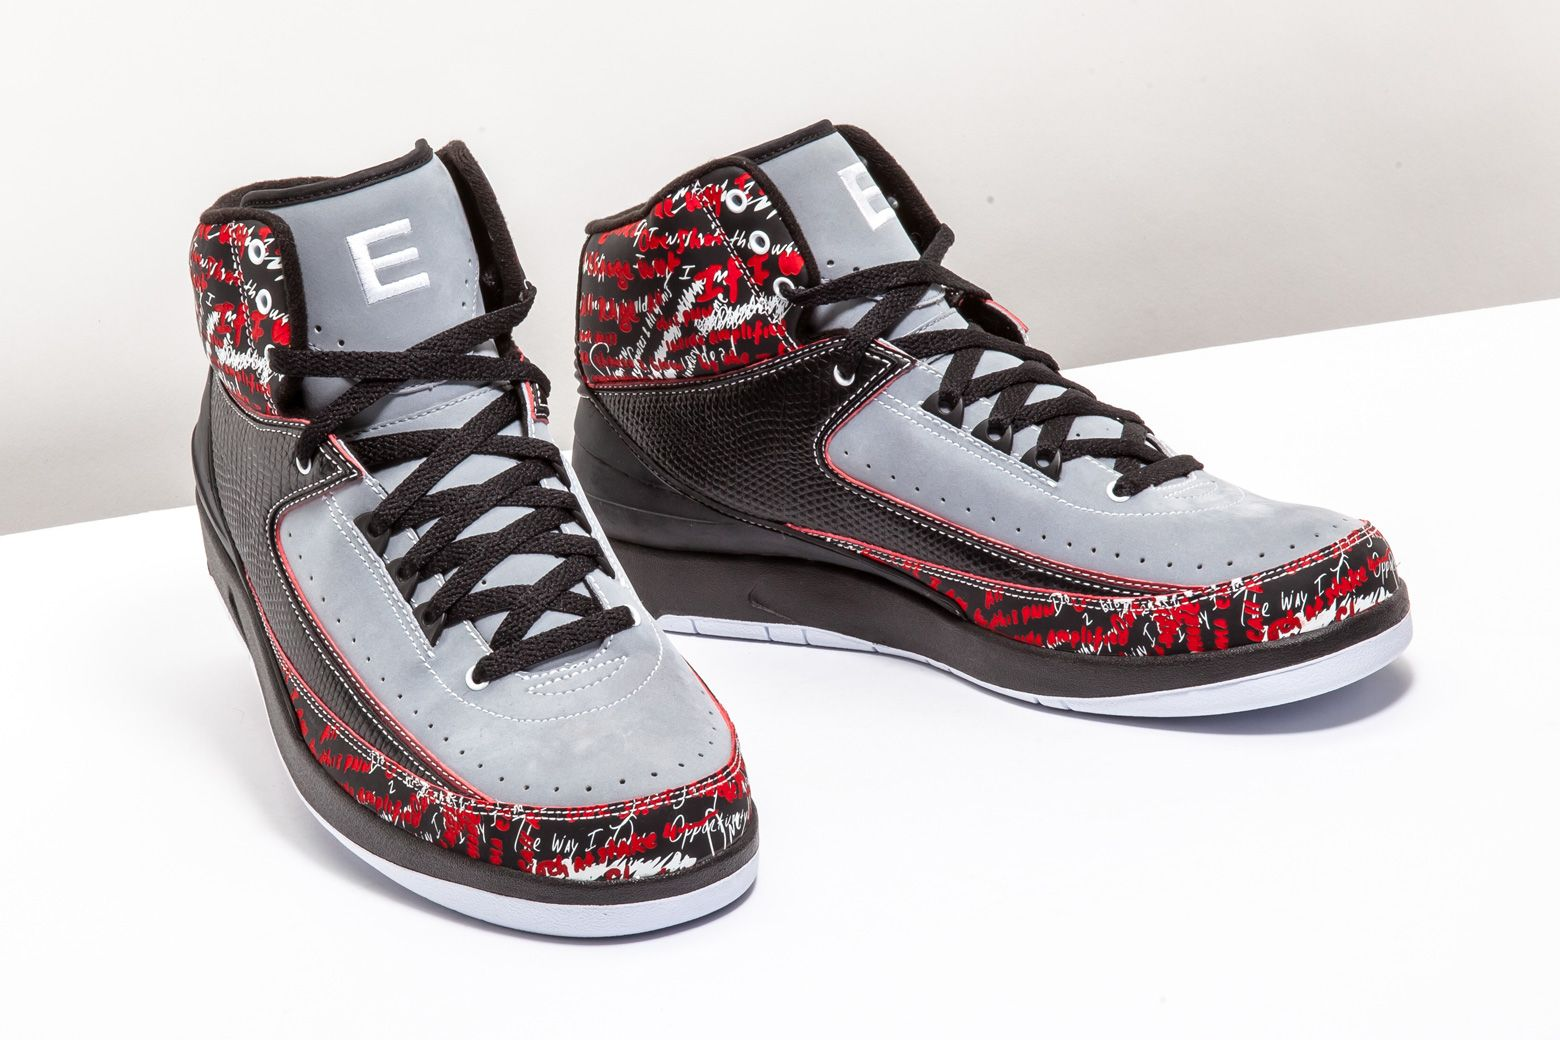 detailing f613e a1441 In 2008, Eminem released a limited 313 pair run of the Air Jordan 2 to  celebrate his biography  The Way I Am.